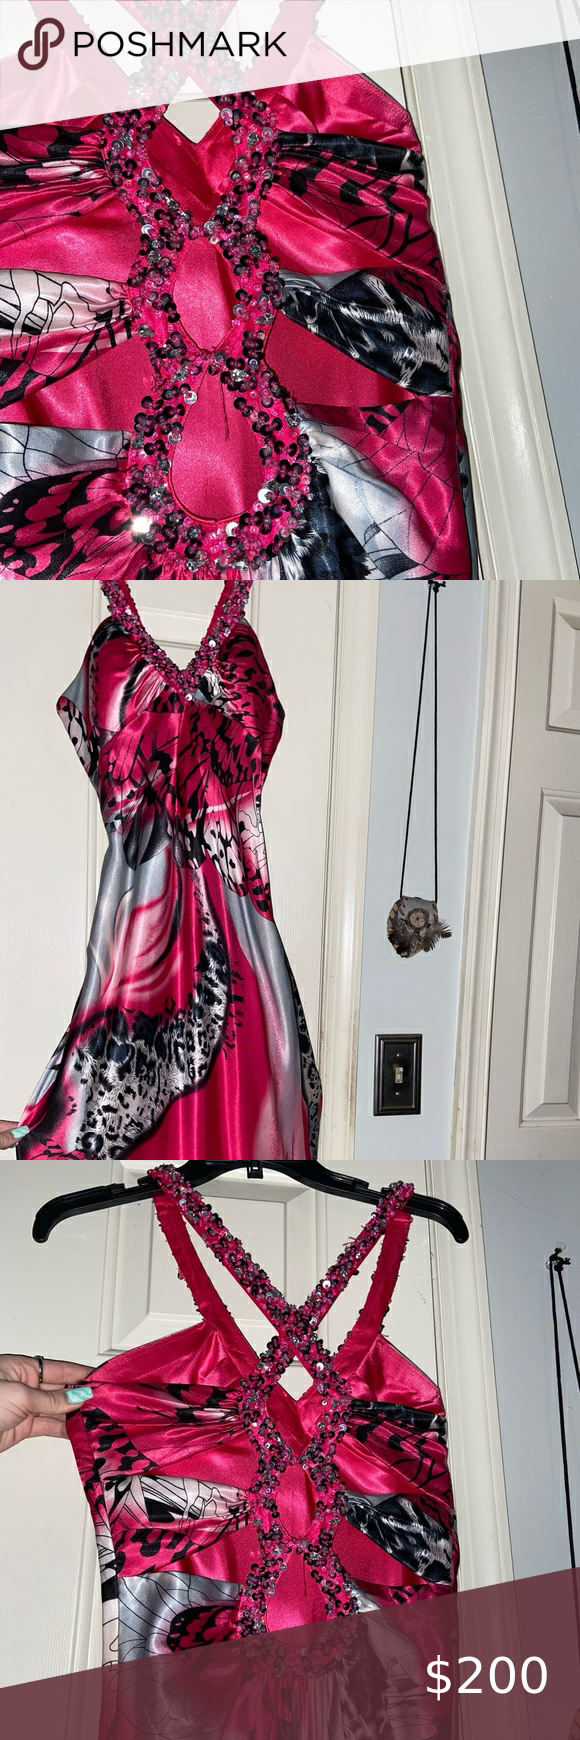 Pink Flow Dress With Jewel Embroidery Pink Prom Colors Pink Ladies